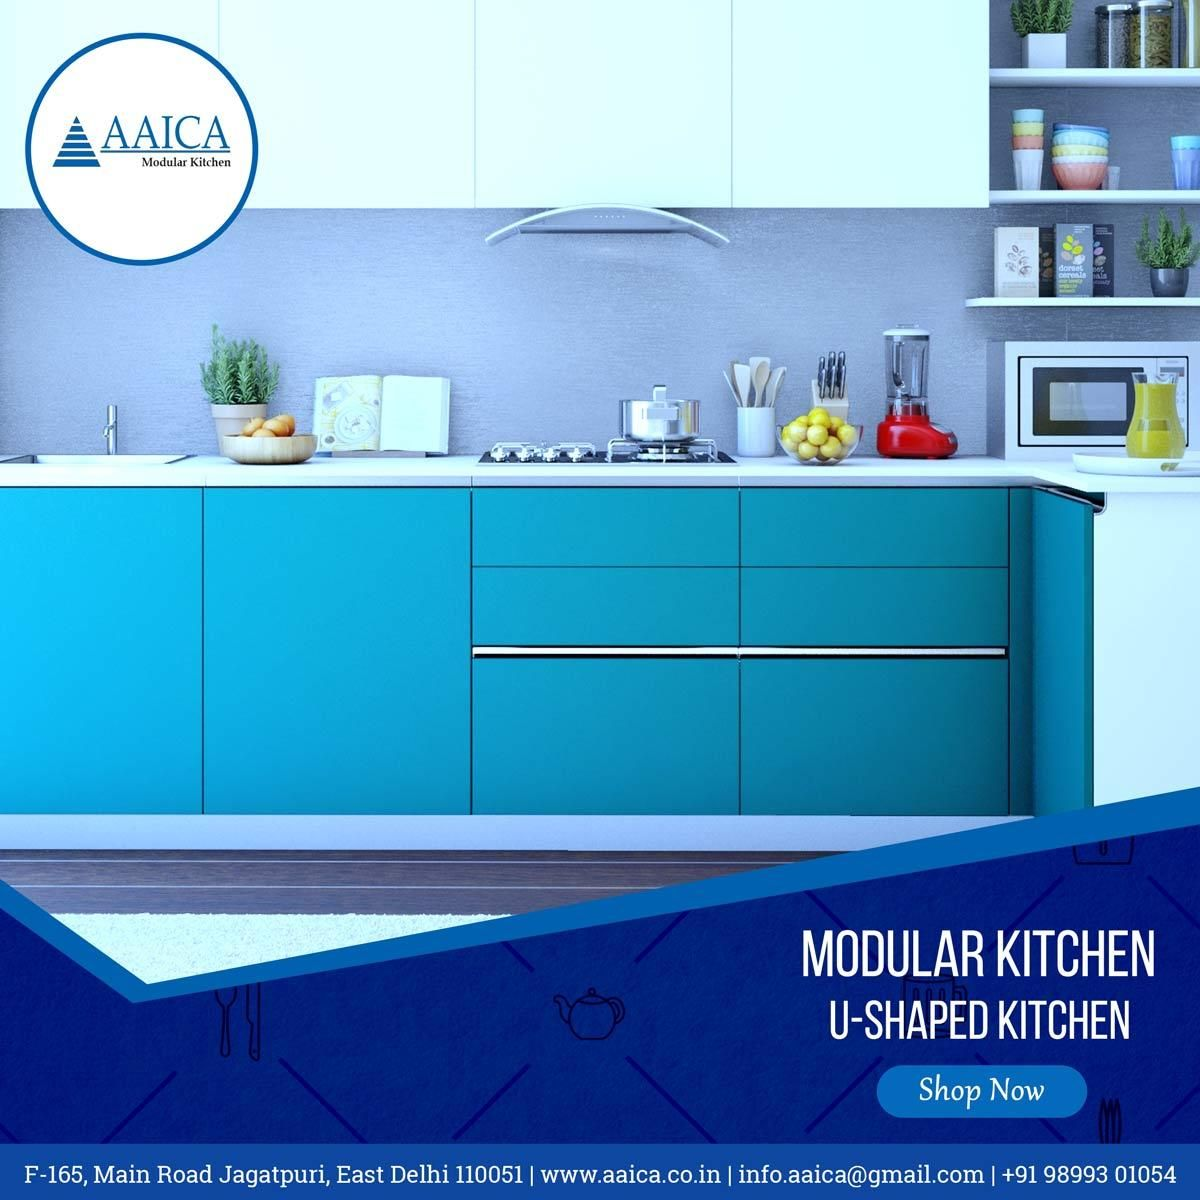 A kitchen is the heart of the home. Get a new modular kitchen at ...